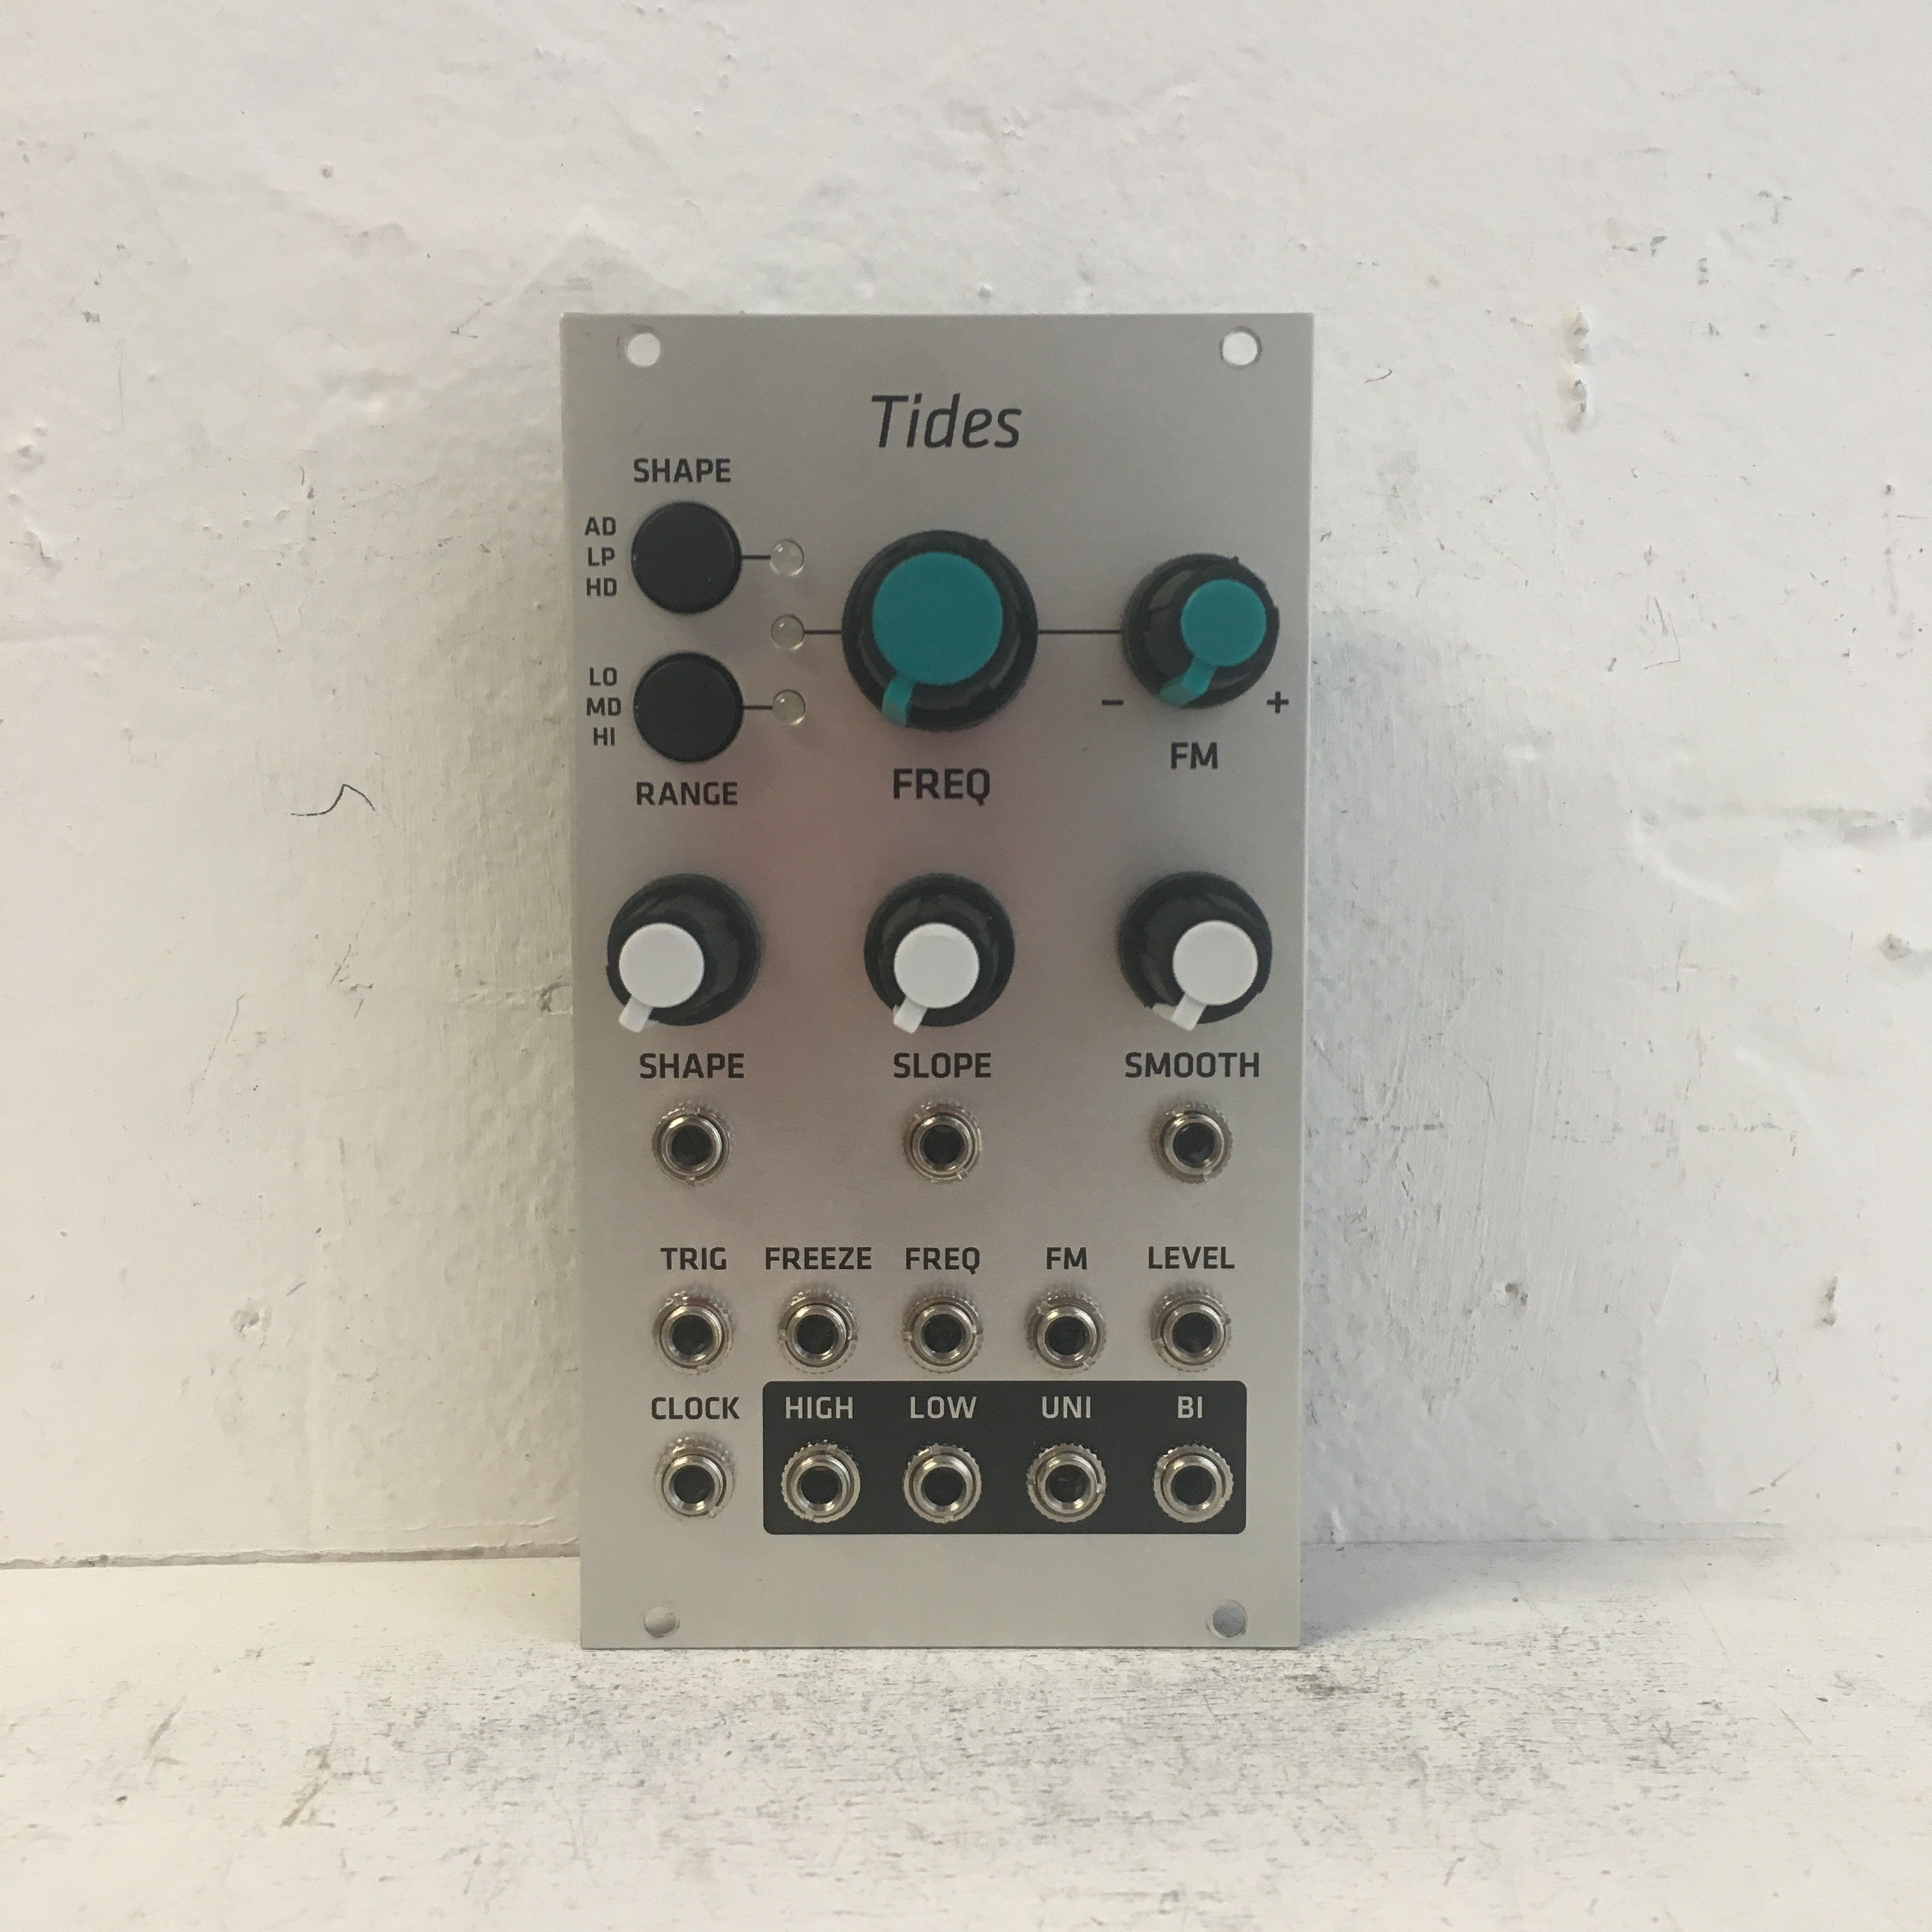 Mutable Instruments Tides w/ Grayscale Panel